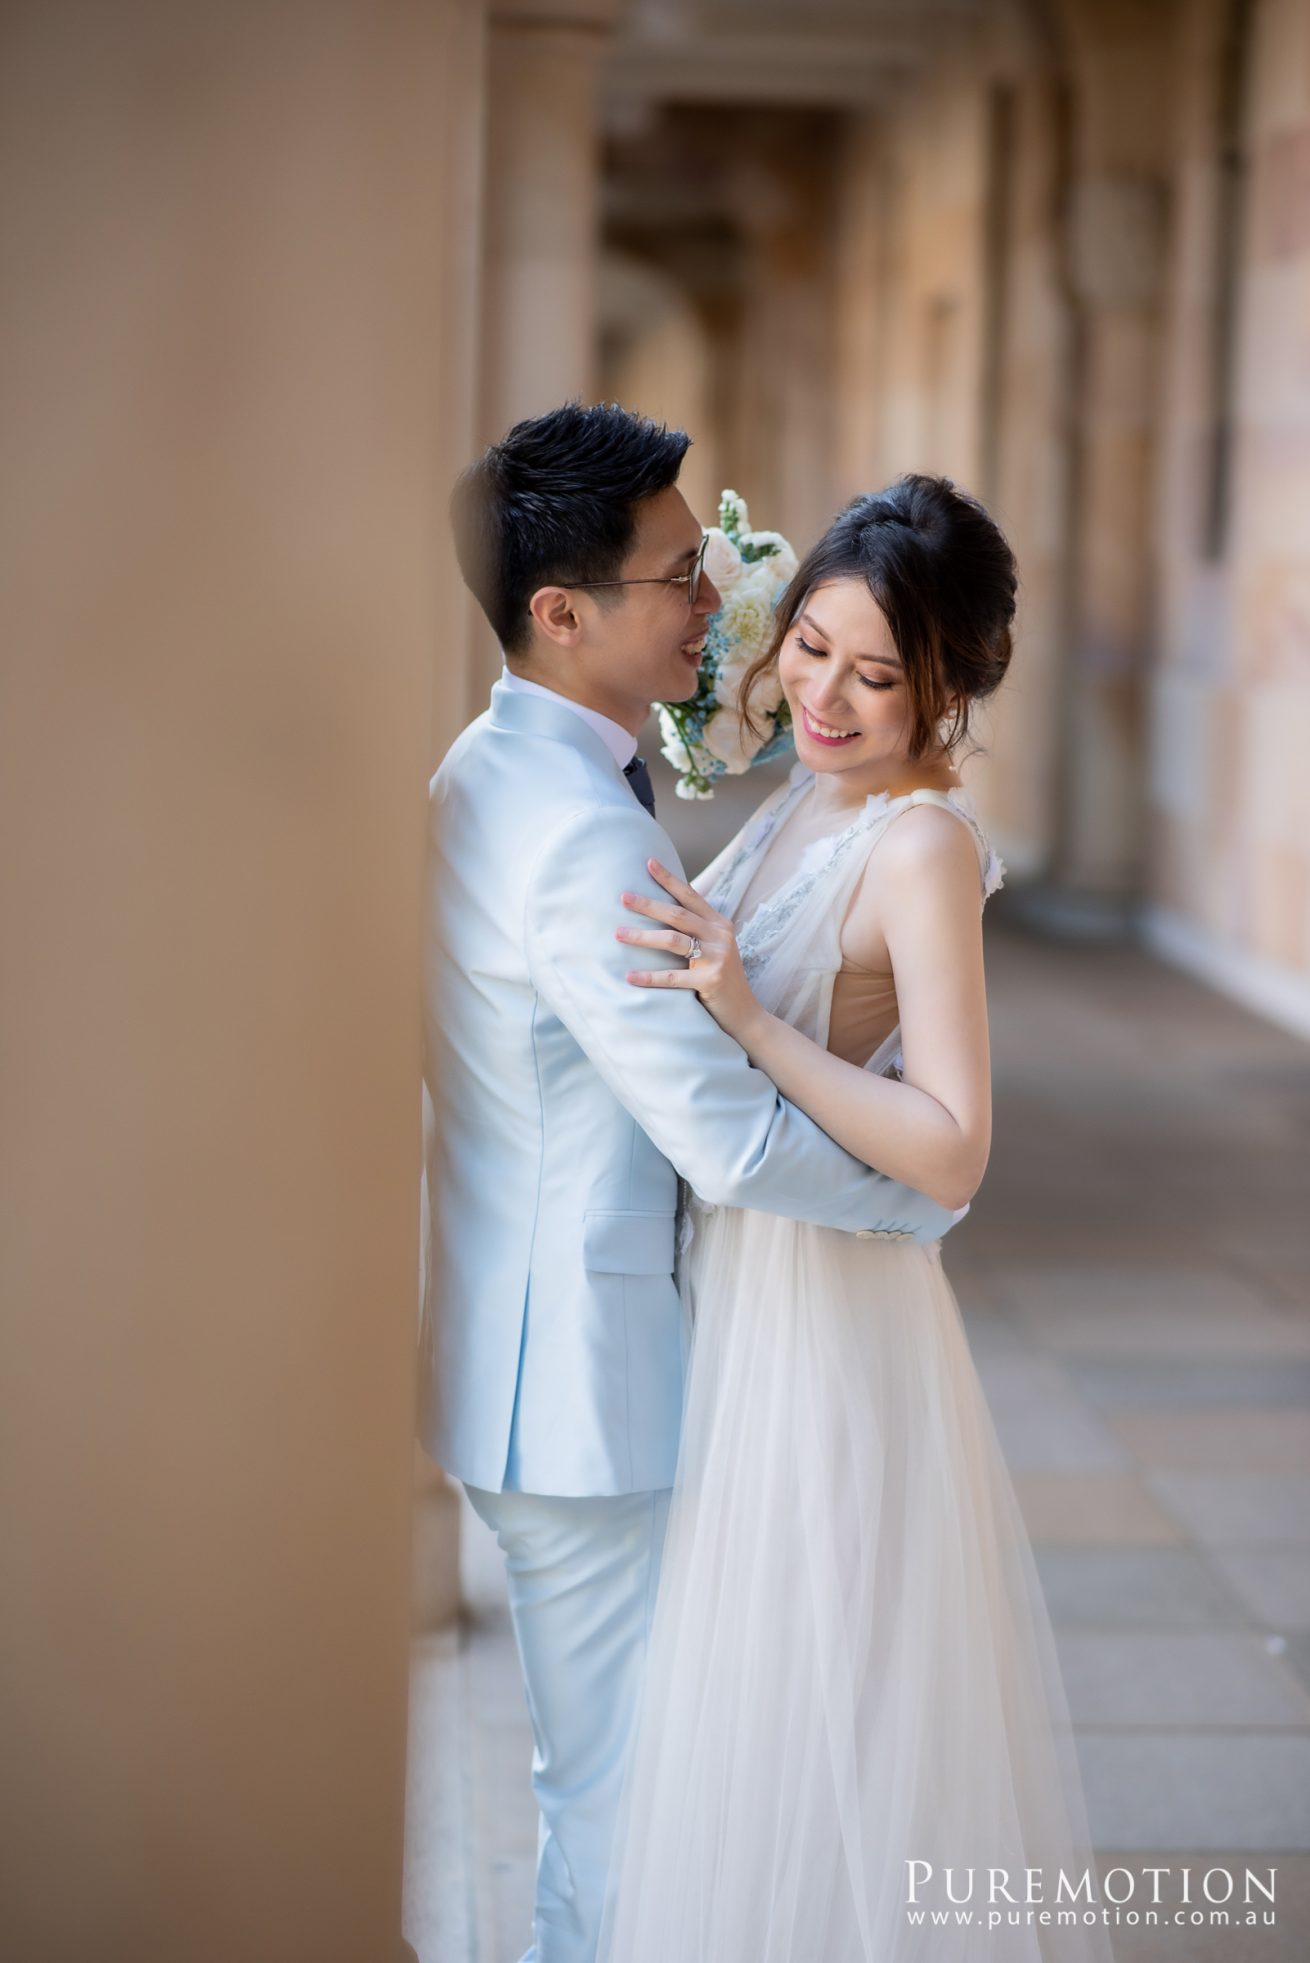 190928 Puremotion Wedding Photography Brisbane Alex Huang AnaDon-0061